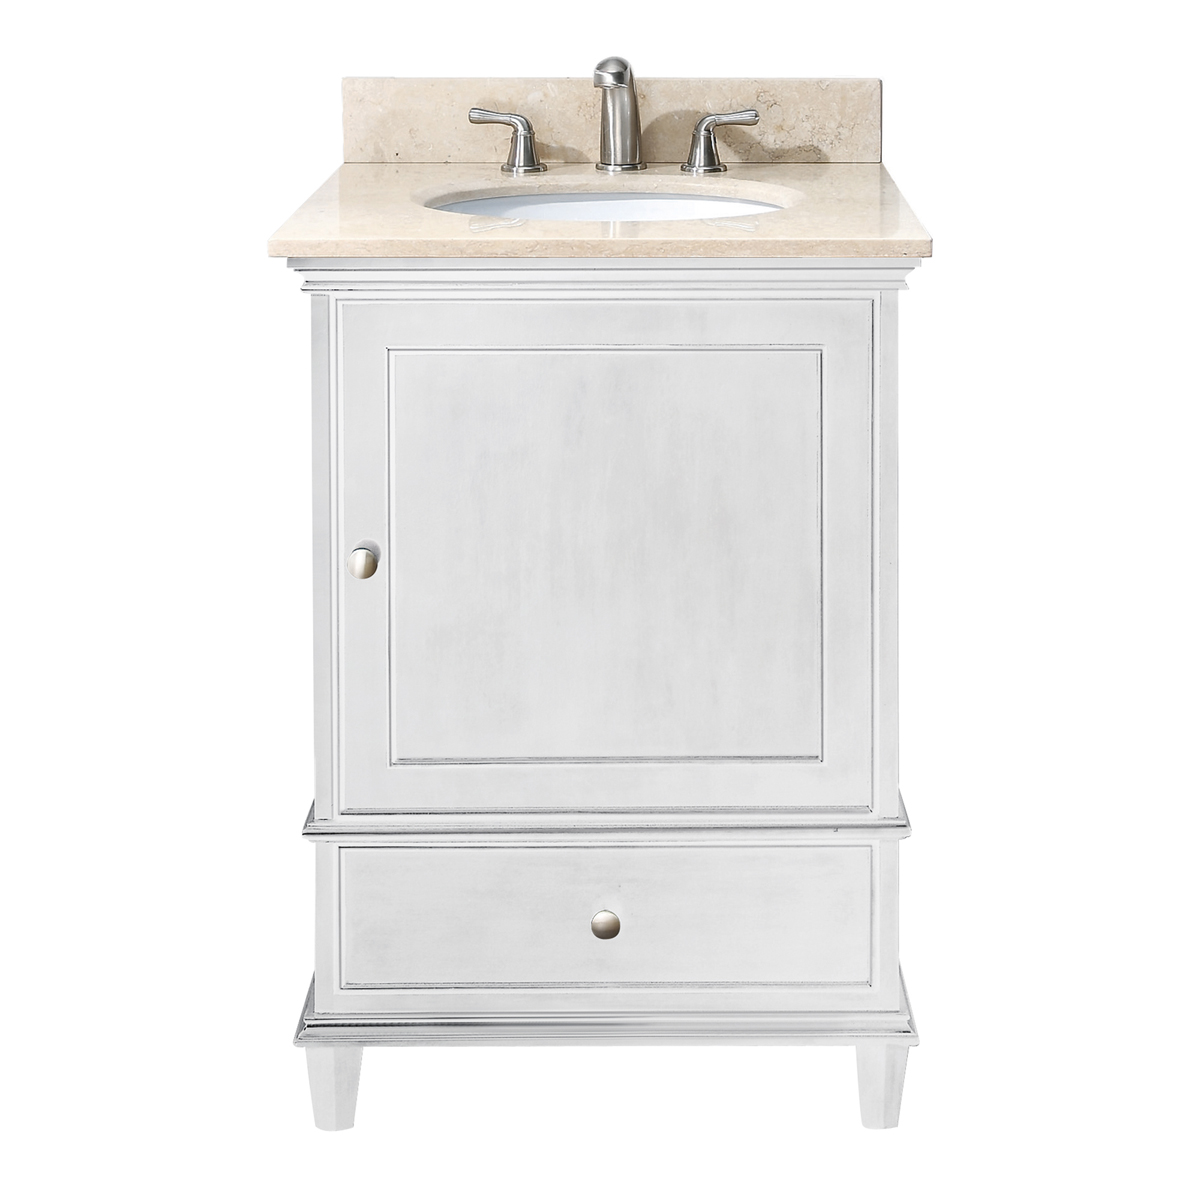 "25"" Cesarina Single Vanity in White"